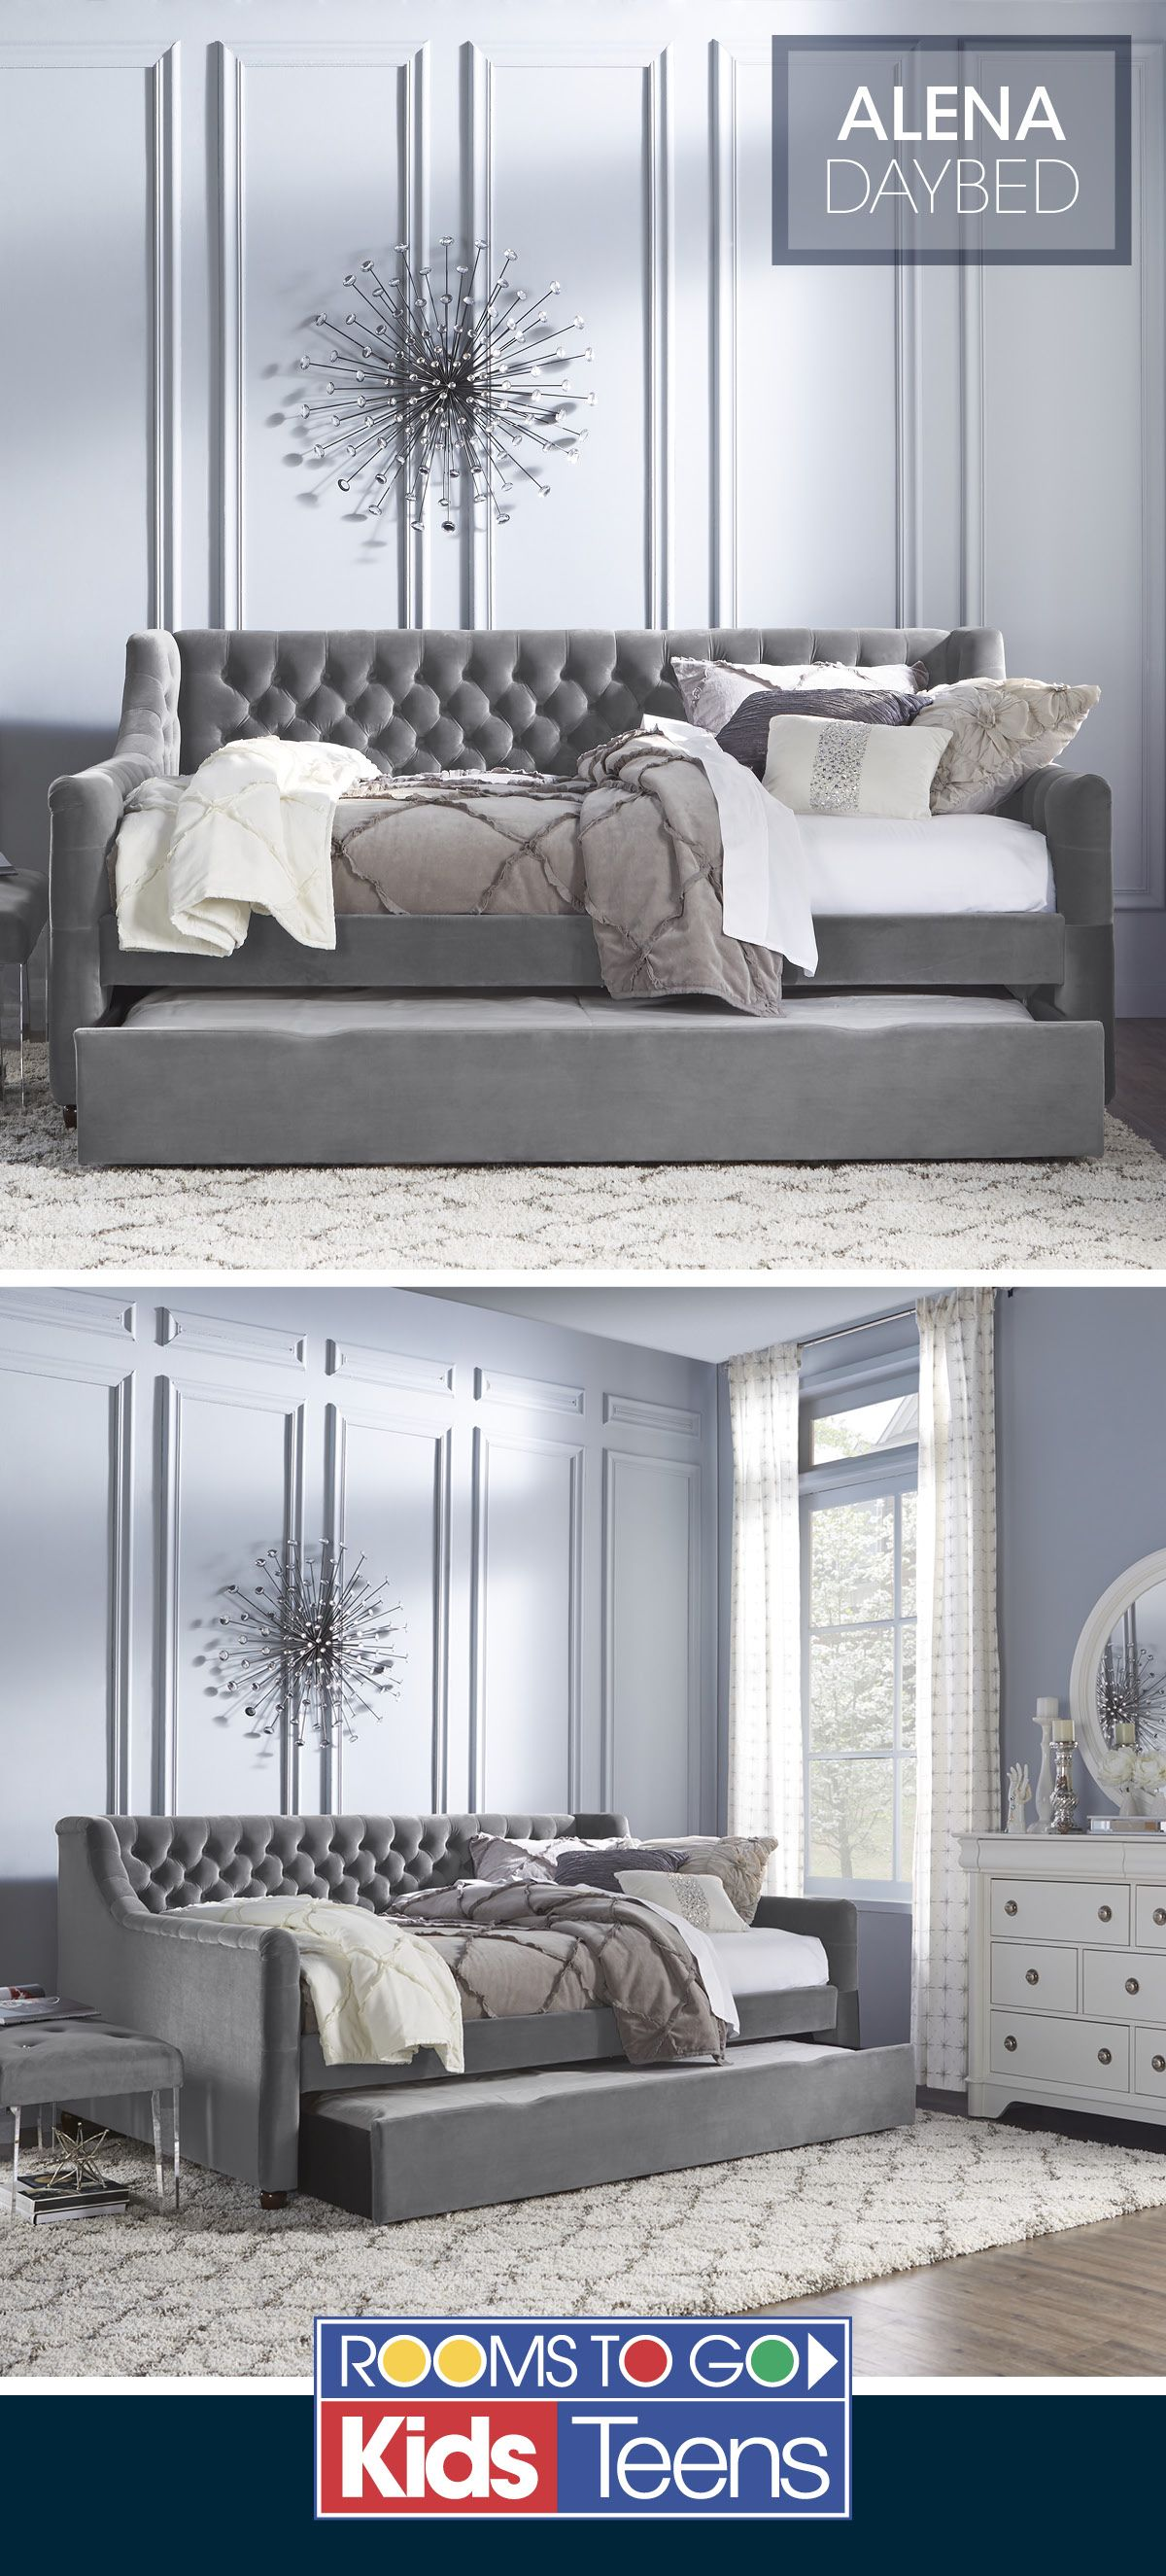 Soft Velvet Upholstery In A Stylish Charcoal Color Is Accented